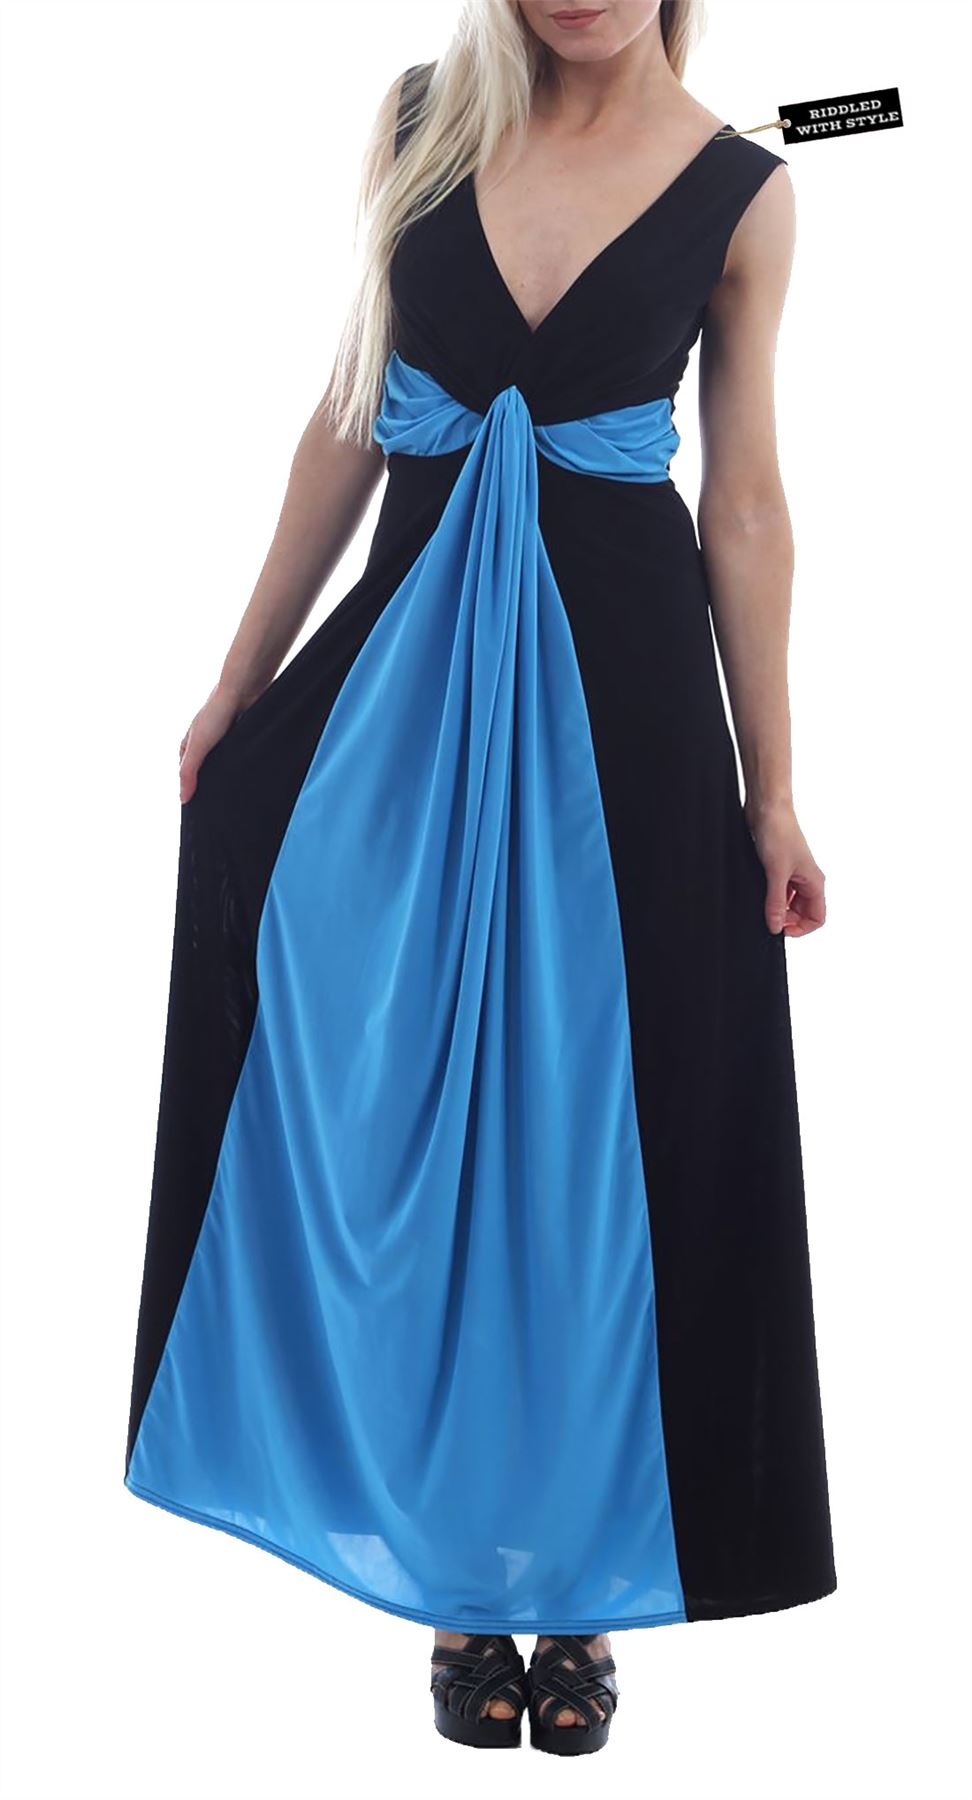 Contrast Tie Knot Panel Maxi Dress Womens Ladies Front Panel Evening ...